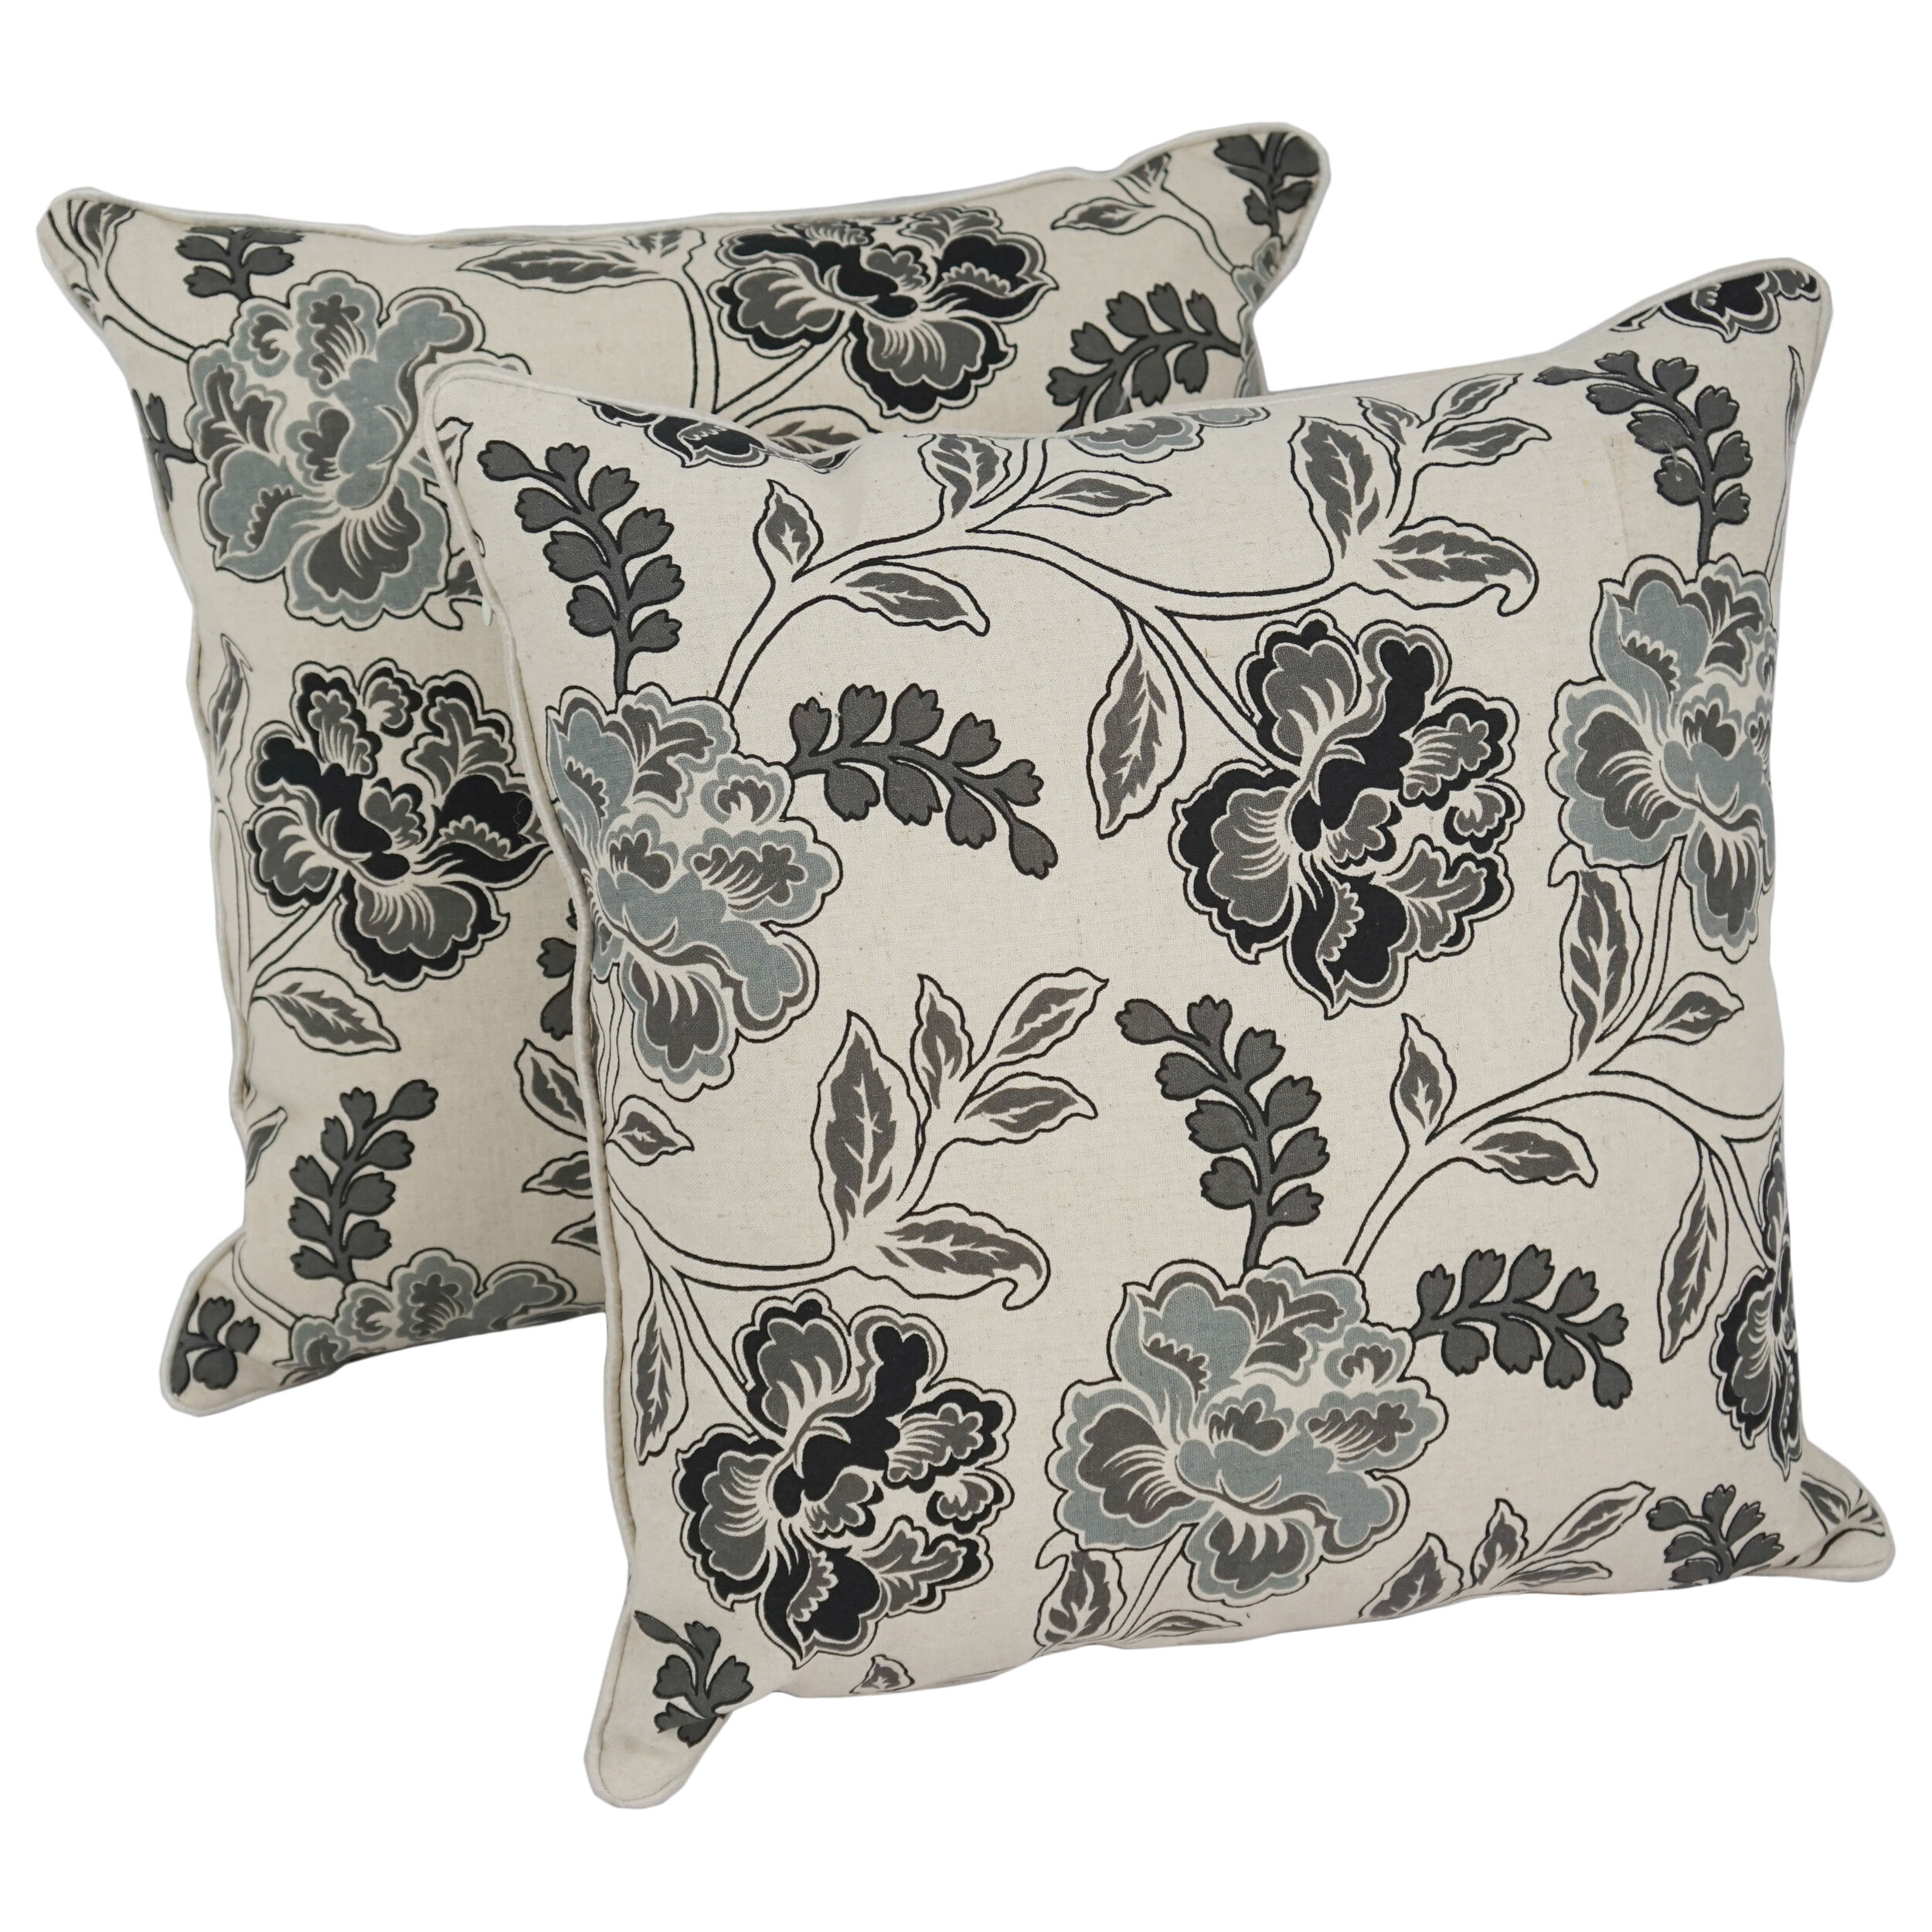 Brendis Throw Pillow (Set of 4) ed5da4f12